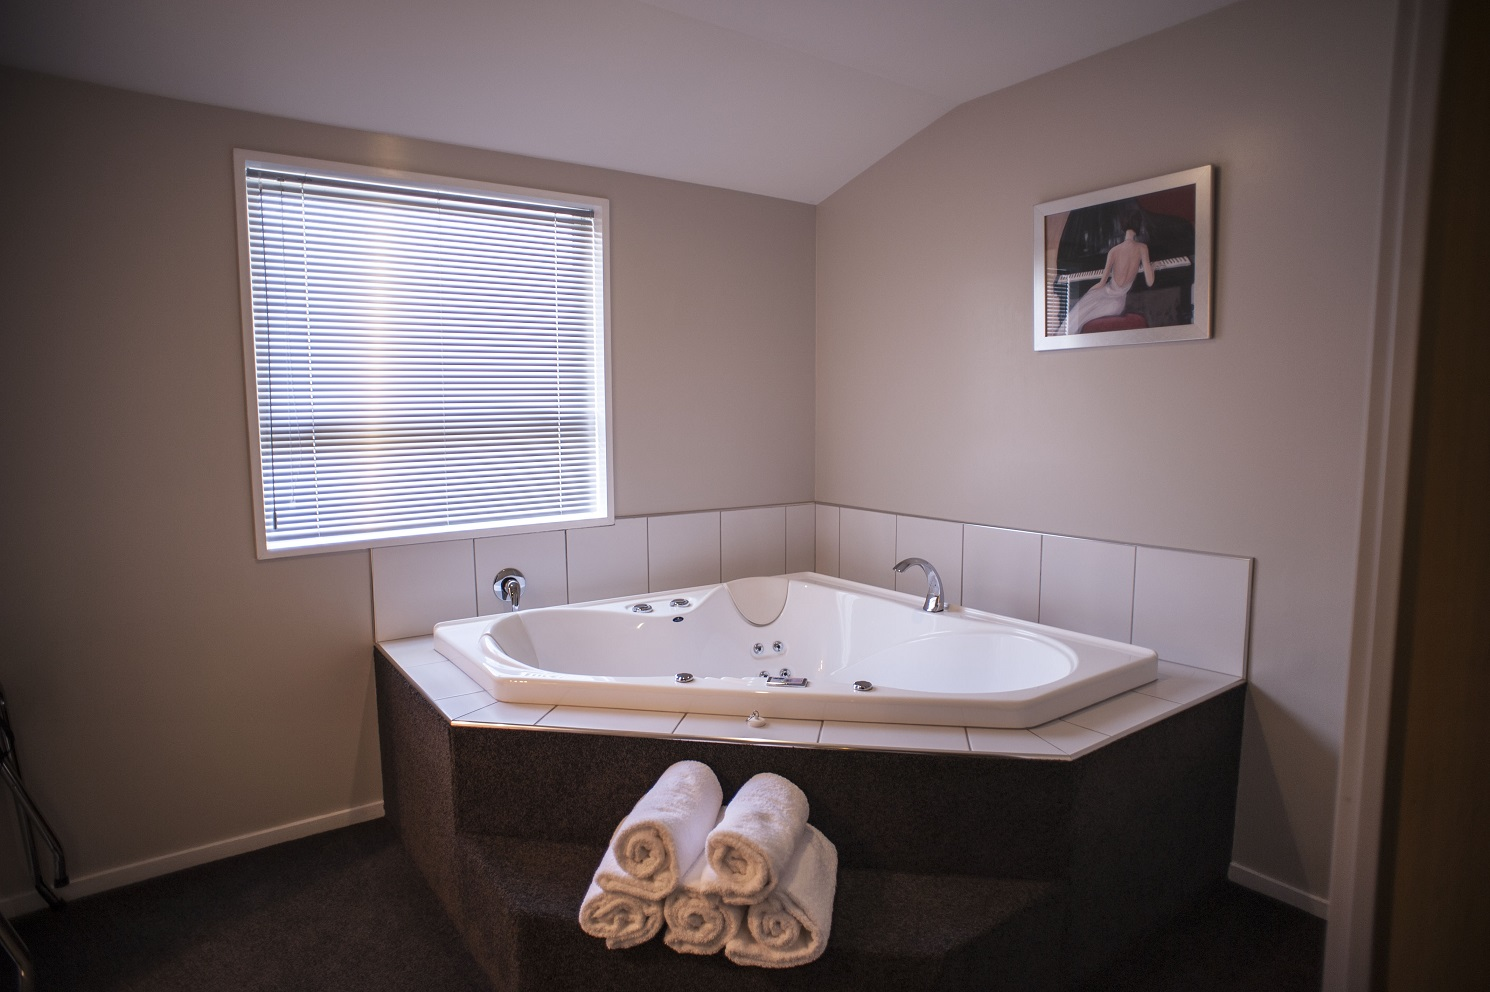 Spa Bathroom Suites Christchurch Spa Room Motel Christchurch Honeymoon Accommodation Nz